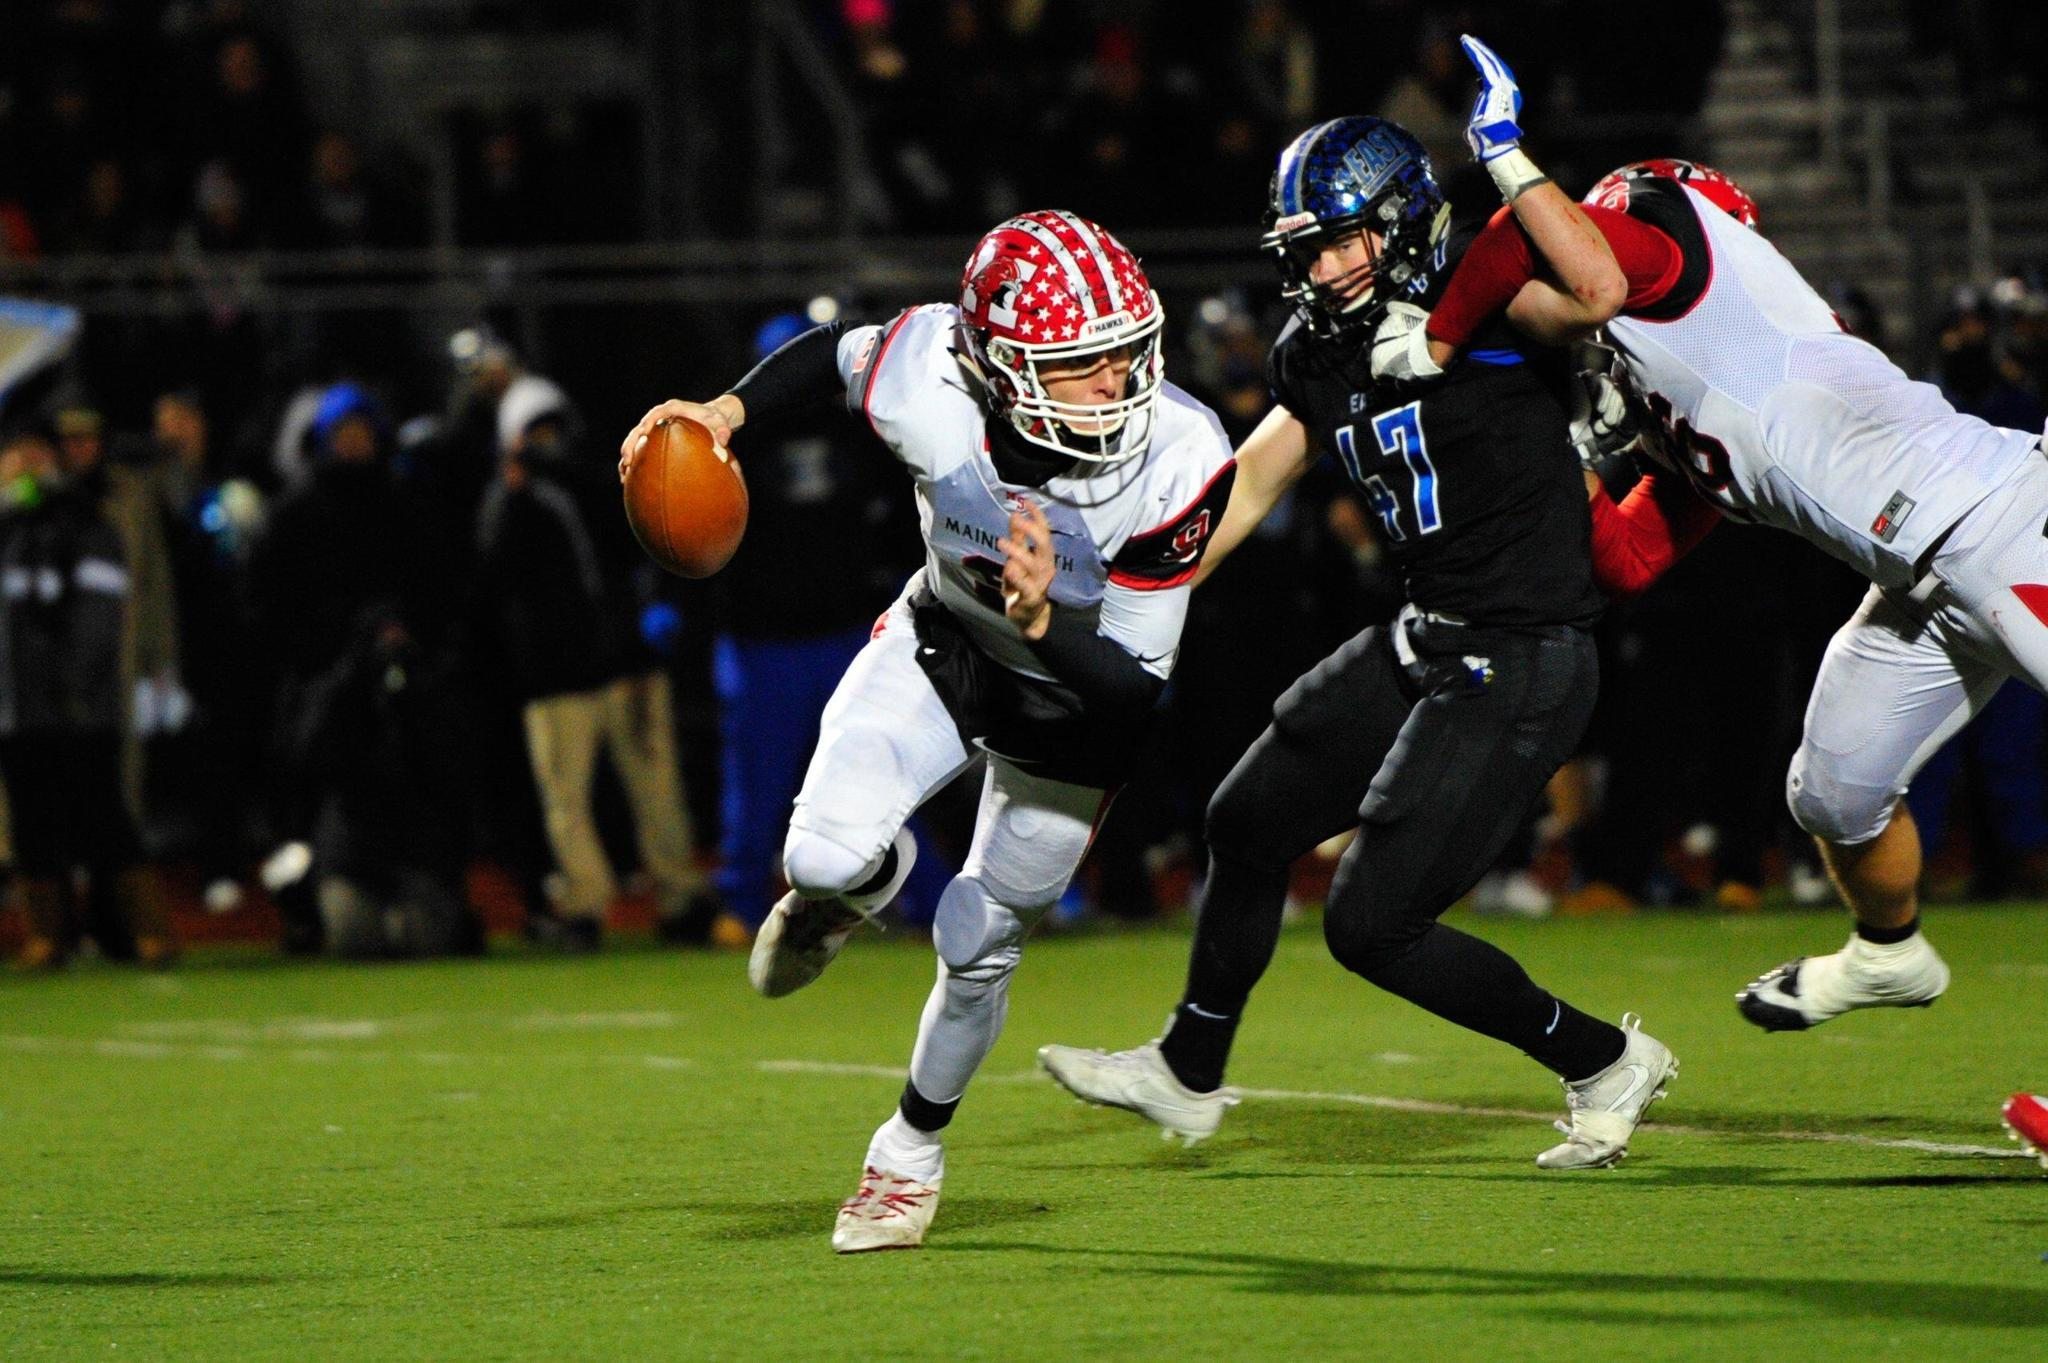 Maine South proud, upbeat about future after loss in state ...